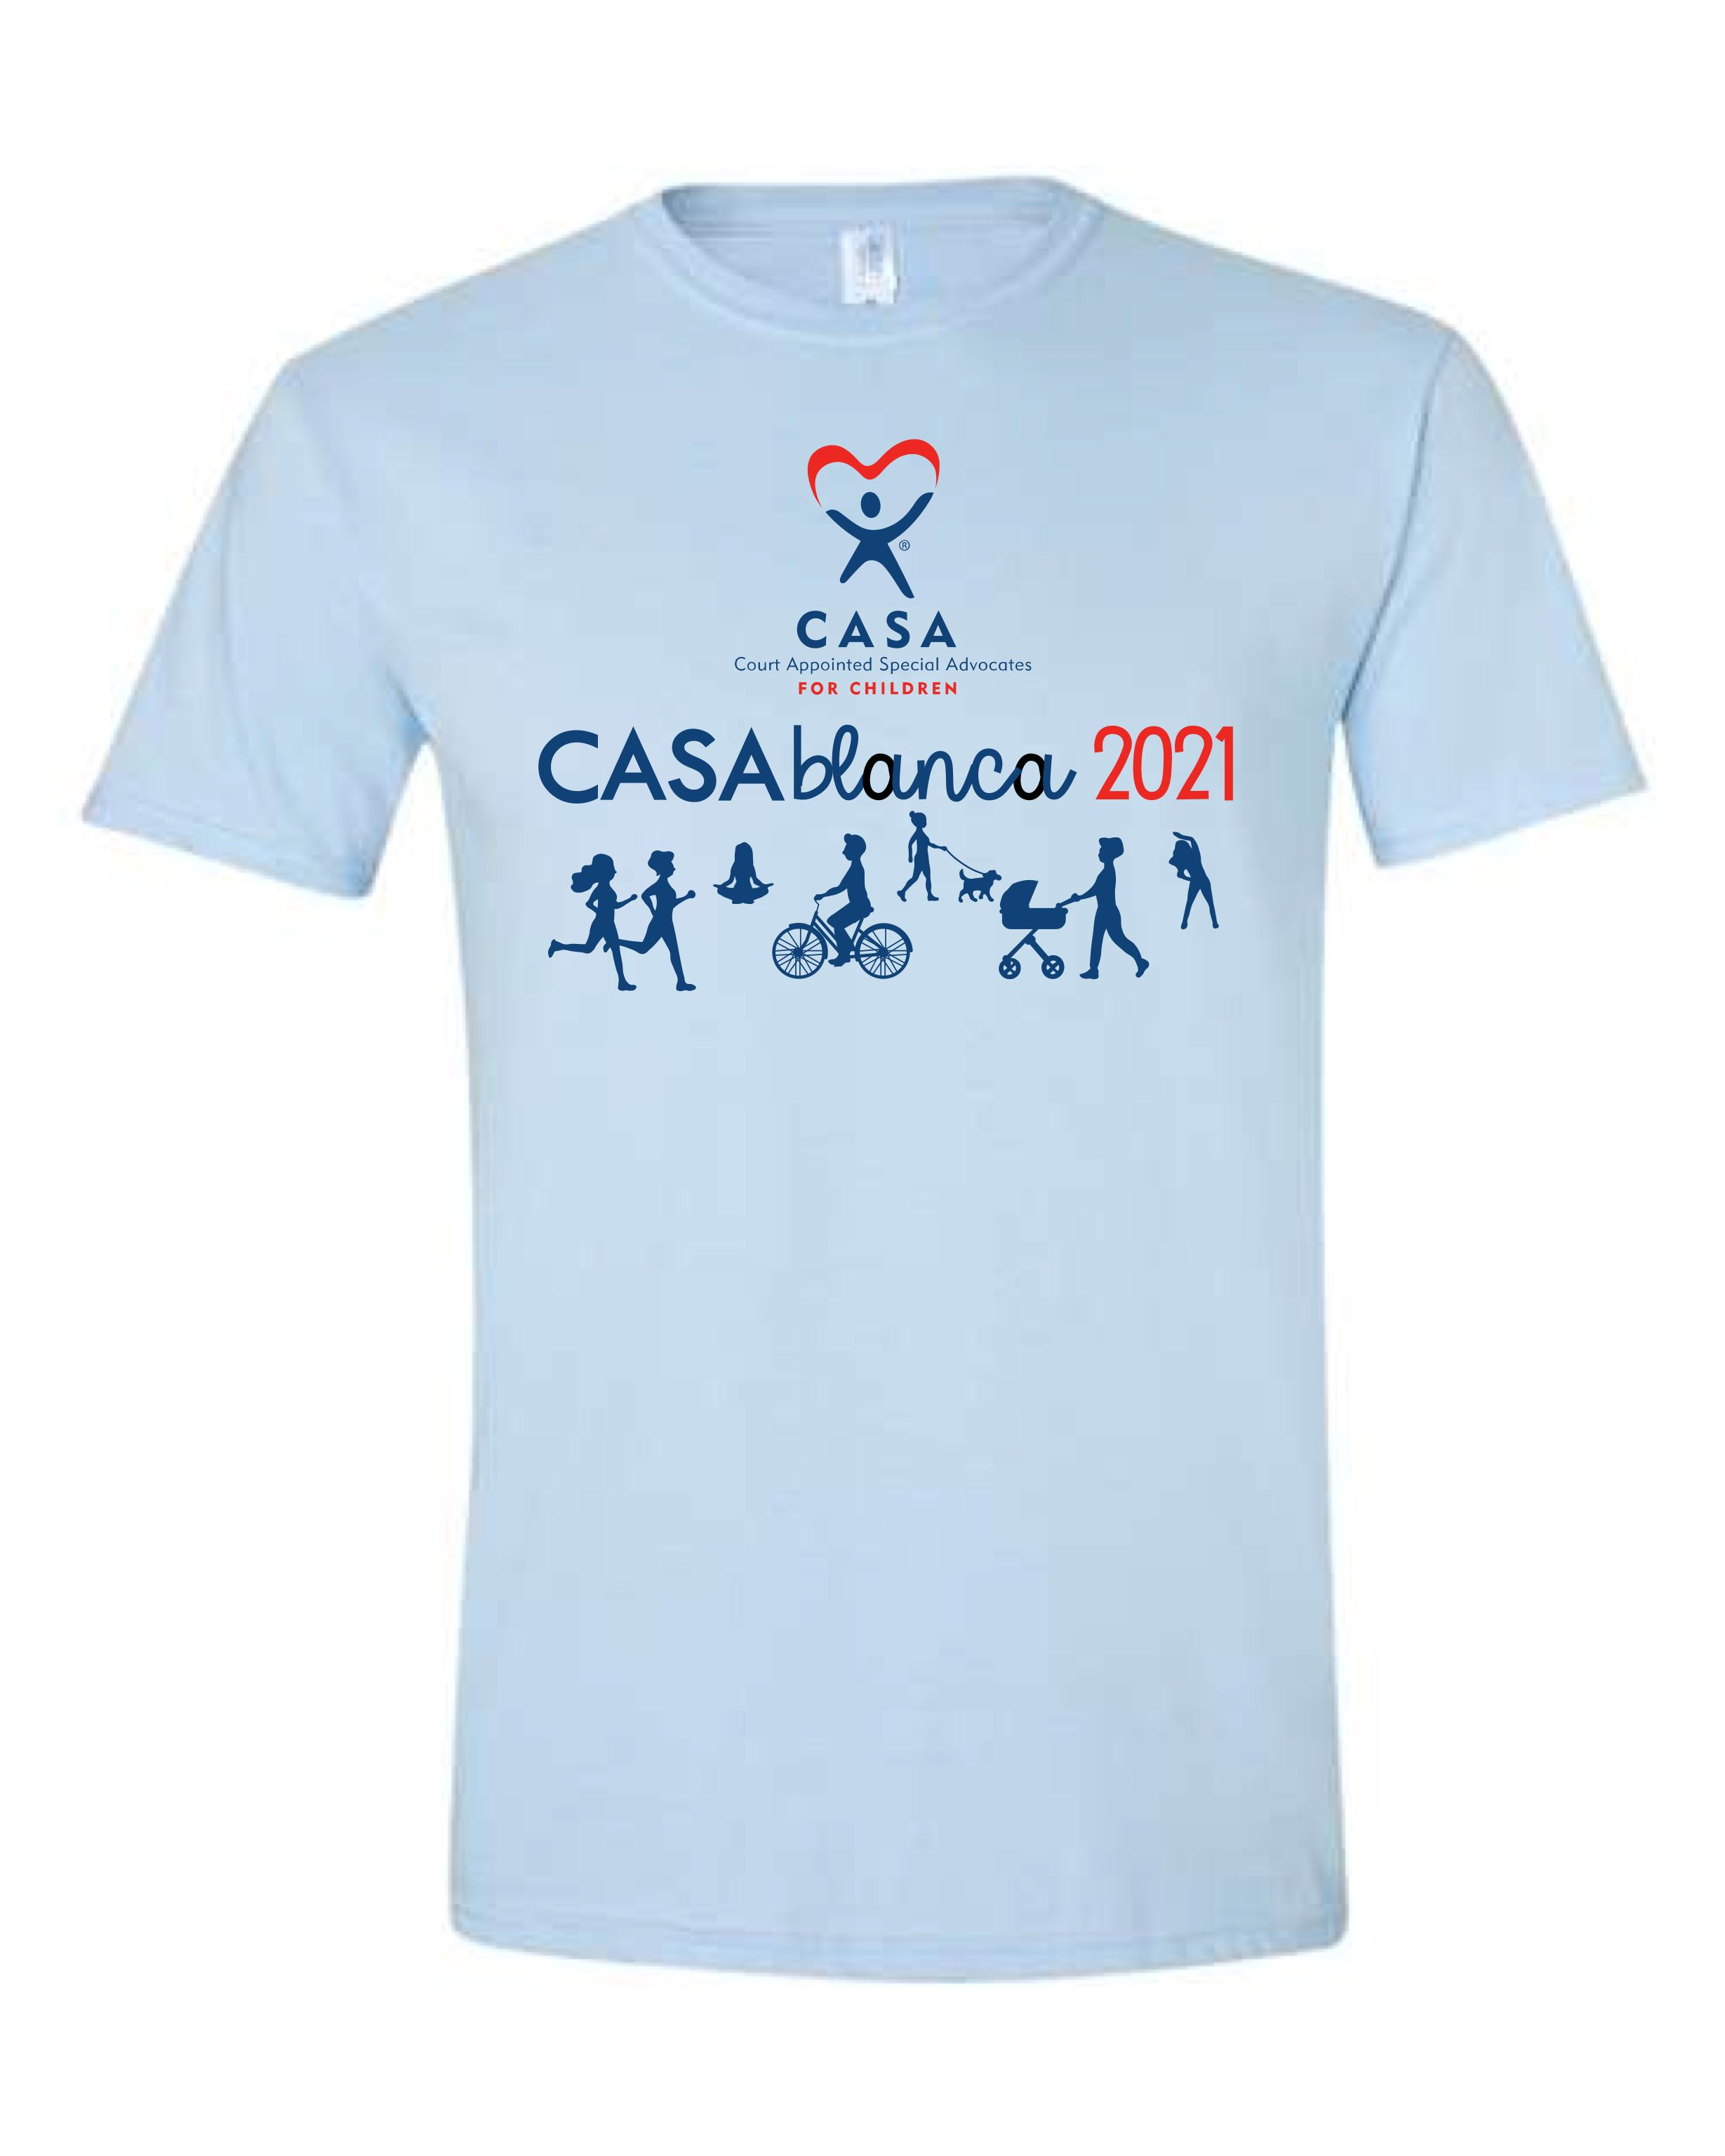 Register & Receive this T-Shirt